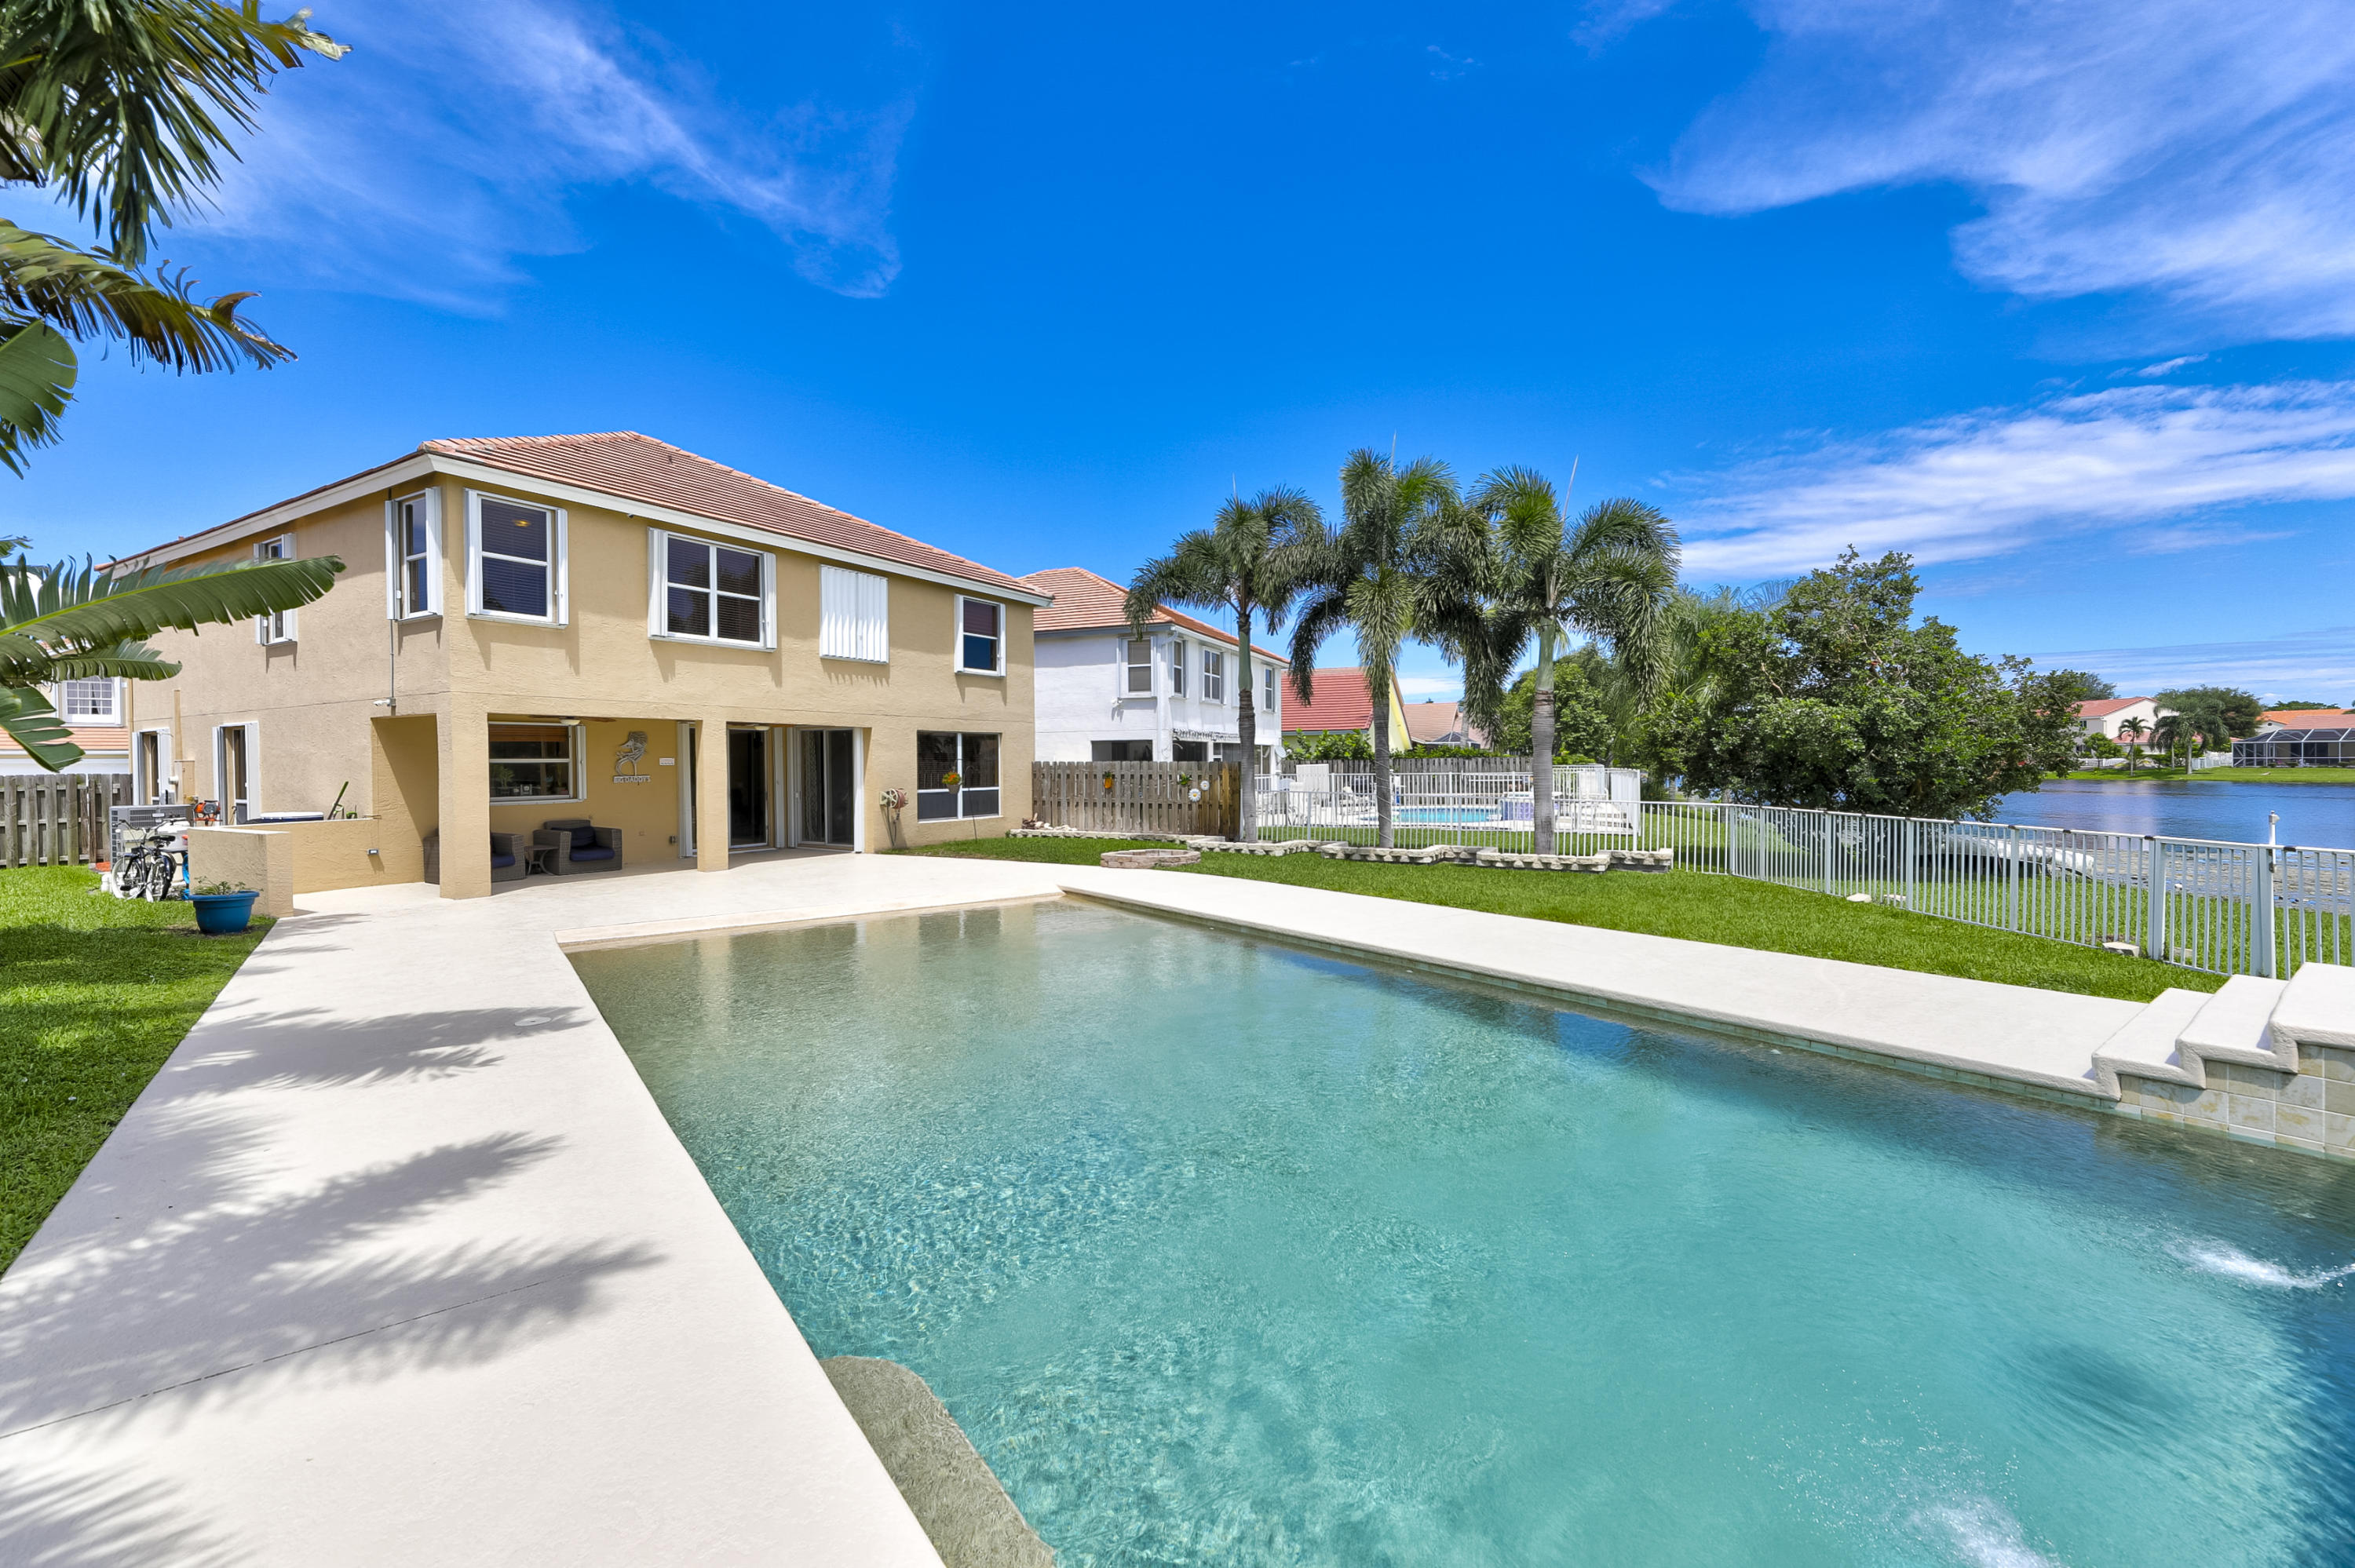 Home for sale in Lake Pointe Lake Worth Florida